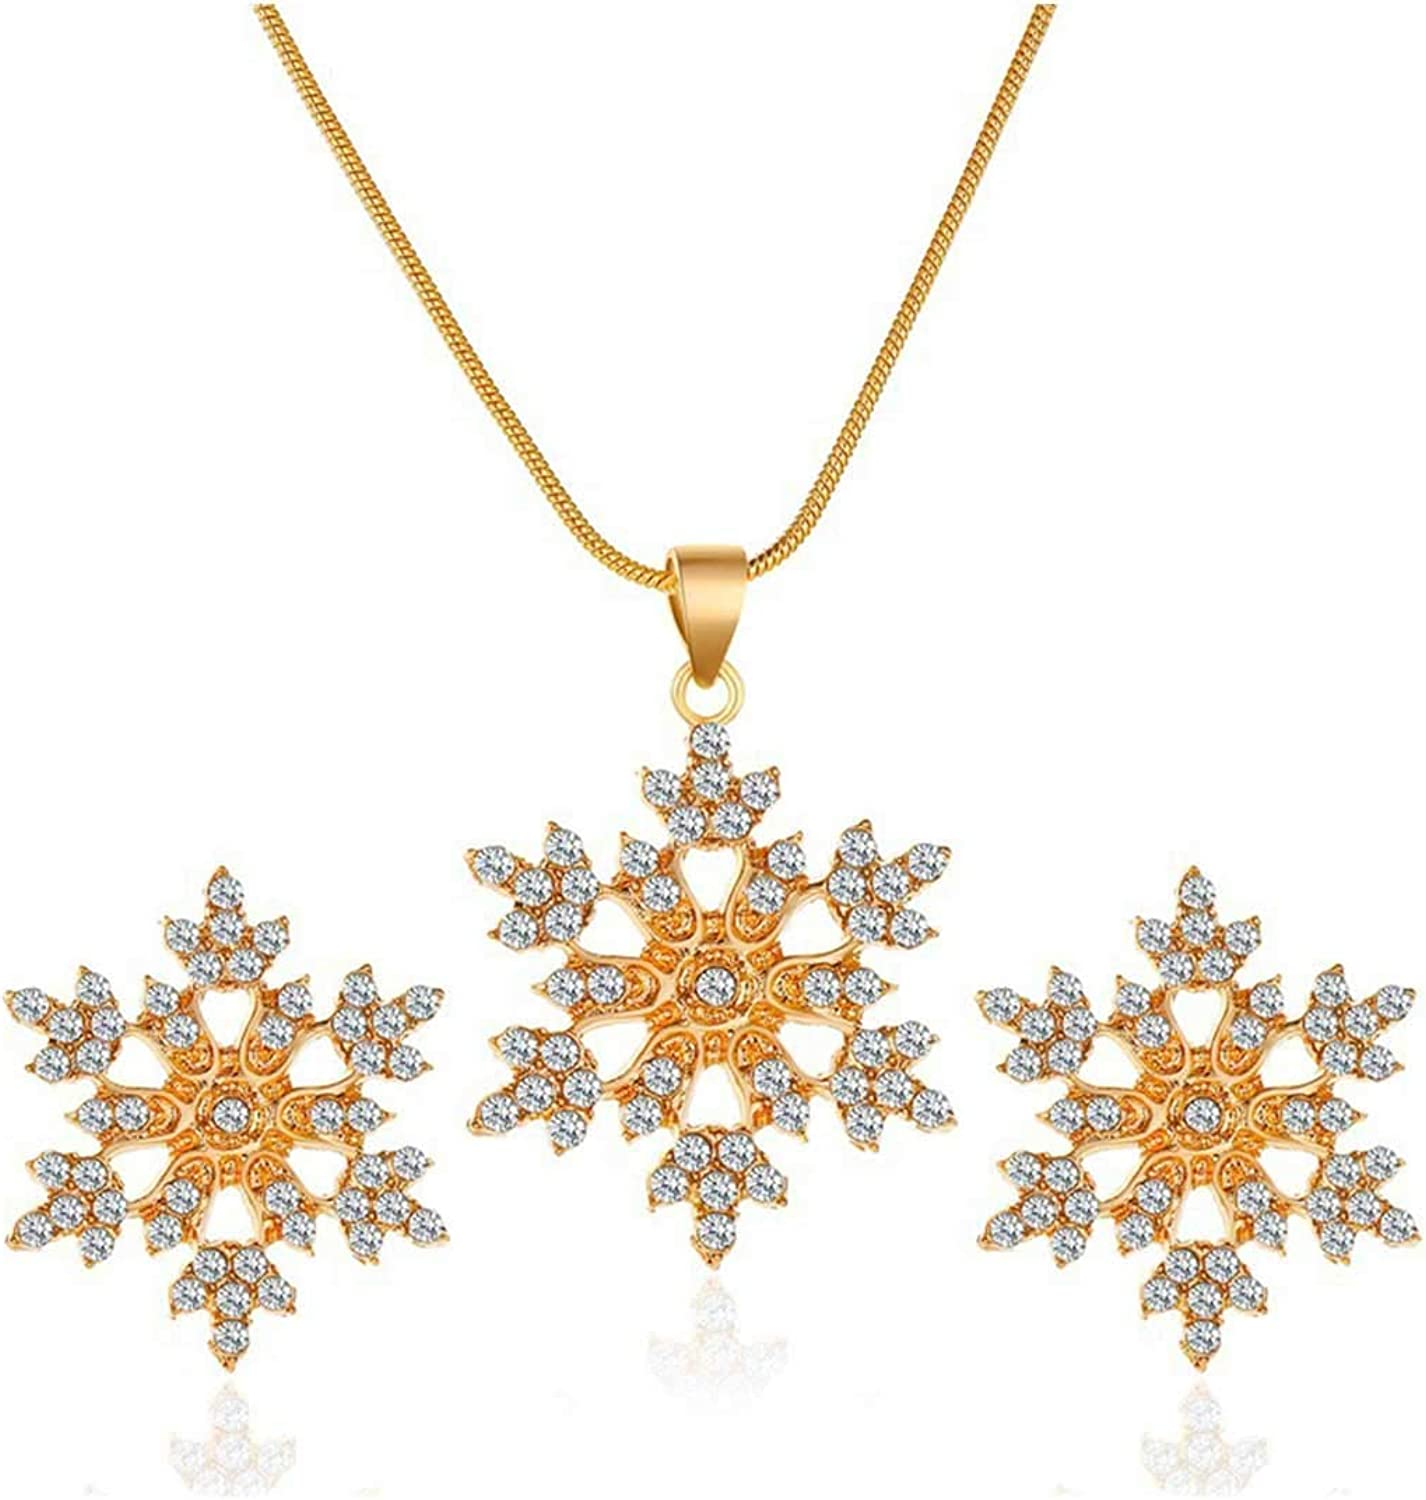 Pingyongchang Sparkly Rhinestone Xmas Snowflake Pendant Earring Necklaces Christmas Snowflake Jewelry Set Novelty Glass Charms Y Style Necklace Stud Earring Jewelryset for Women Girls